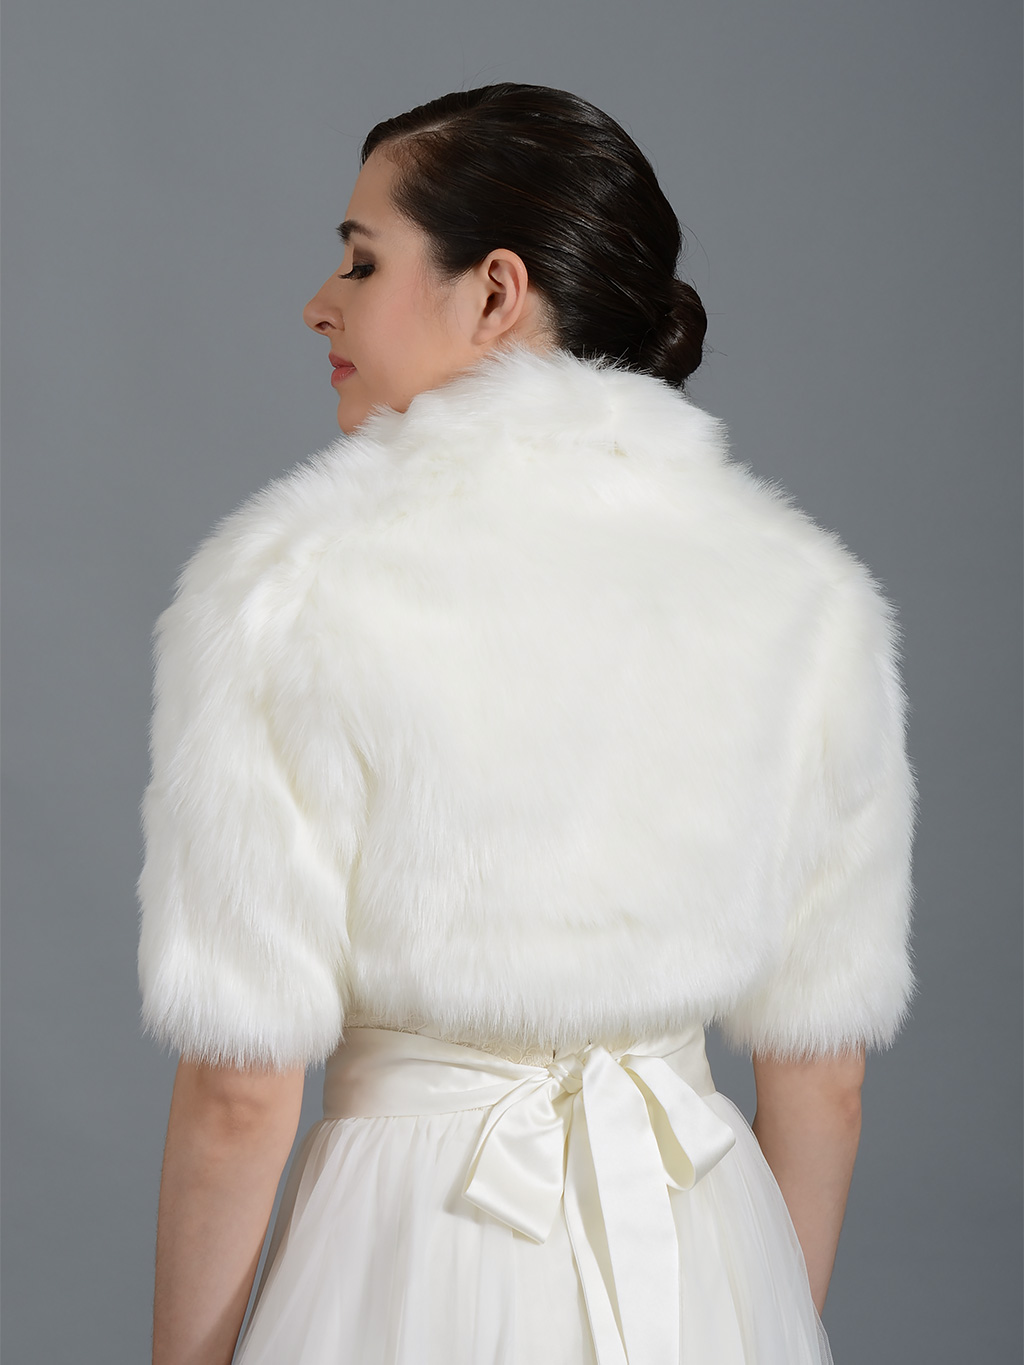 Faux Fur Bolero and Faux Fur Shrug keep you warm for your winter wedding. Great Quality, only at a fraction of the price.